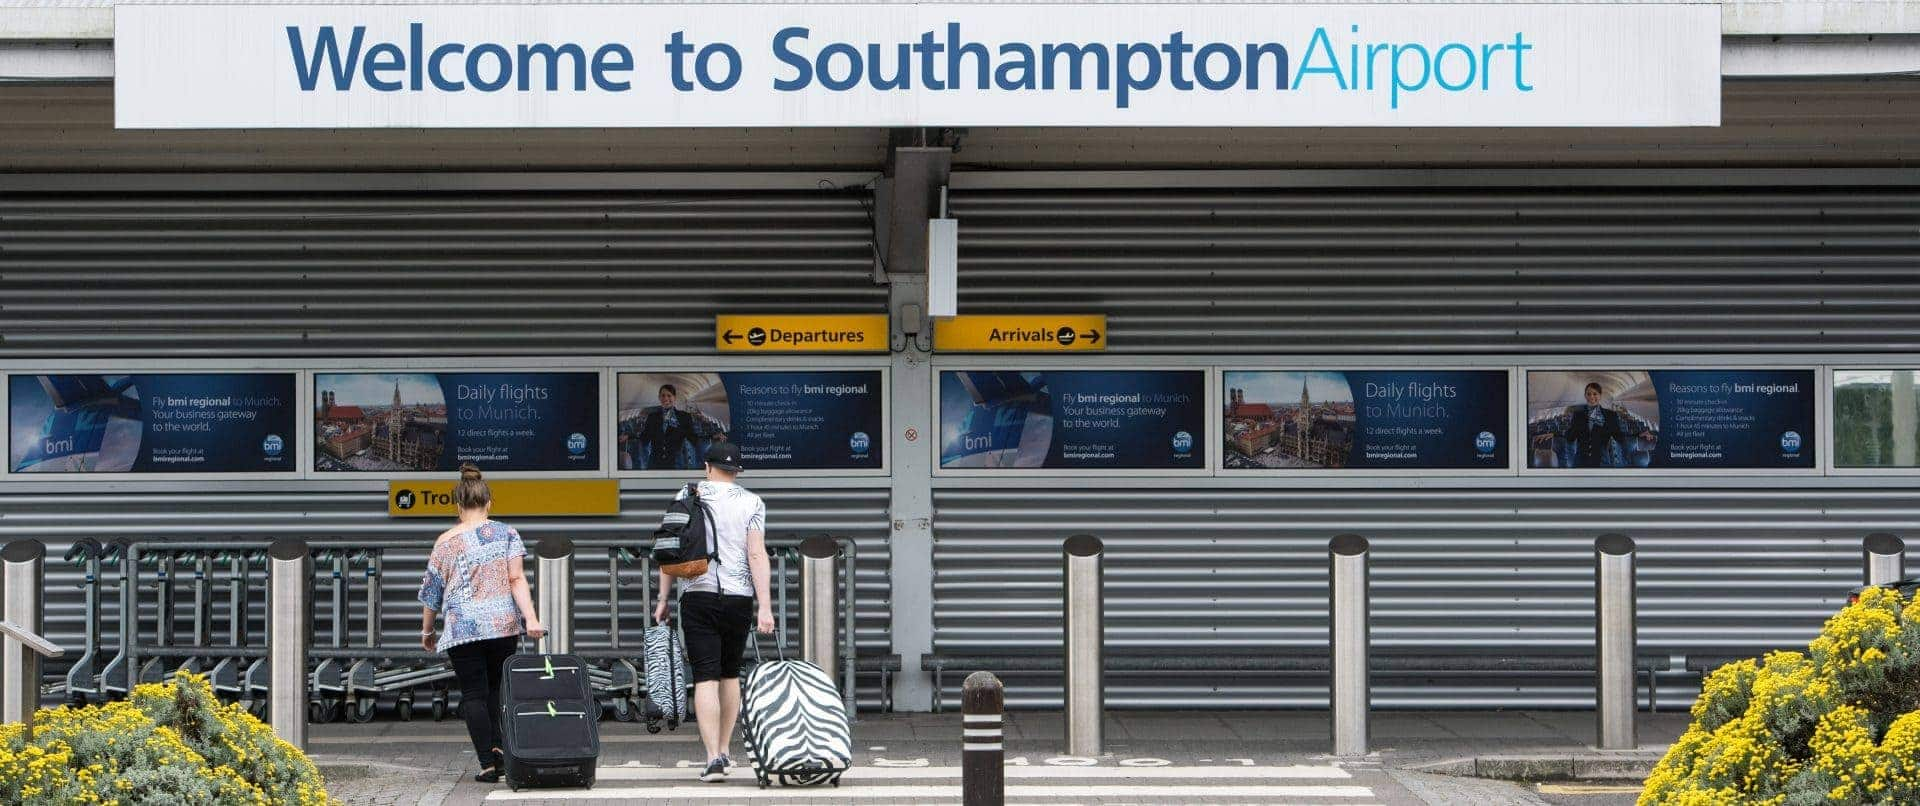 Image of two people arriving at Southampton airport